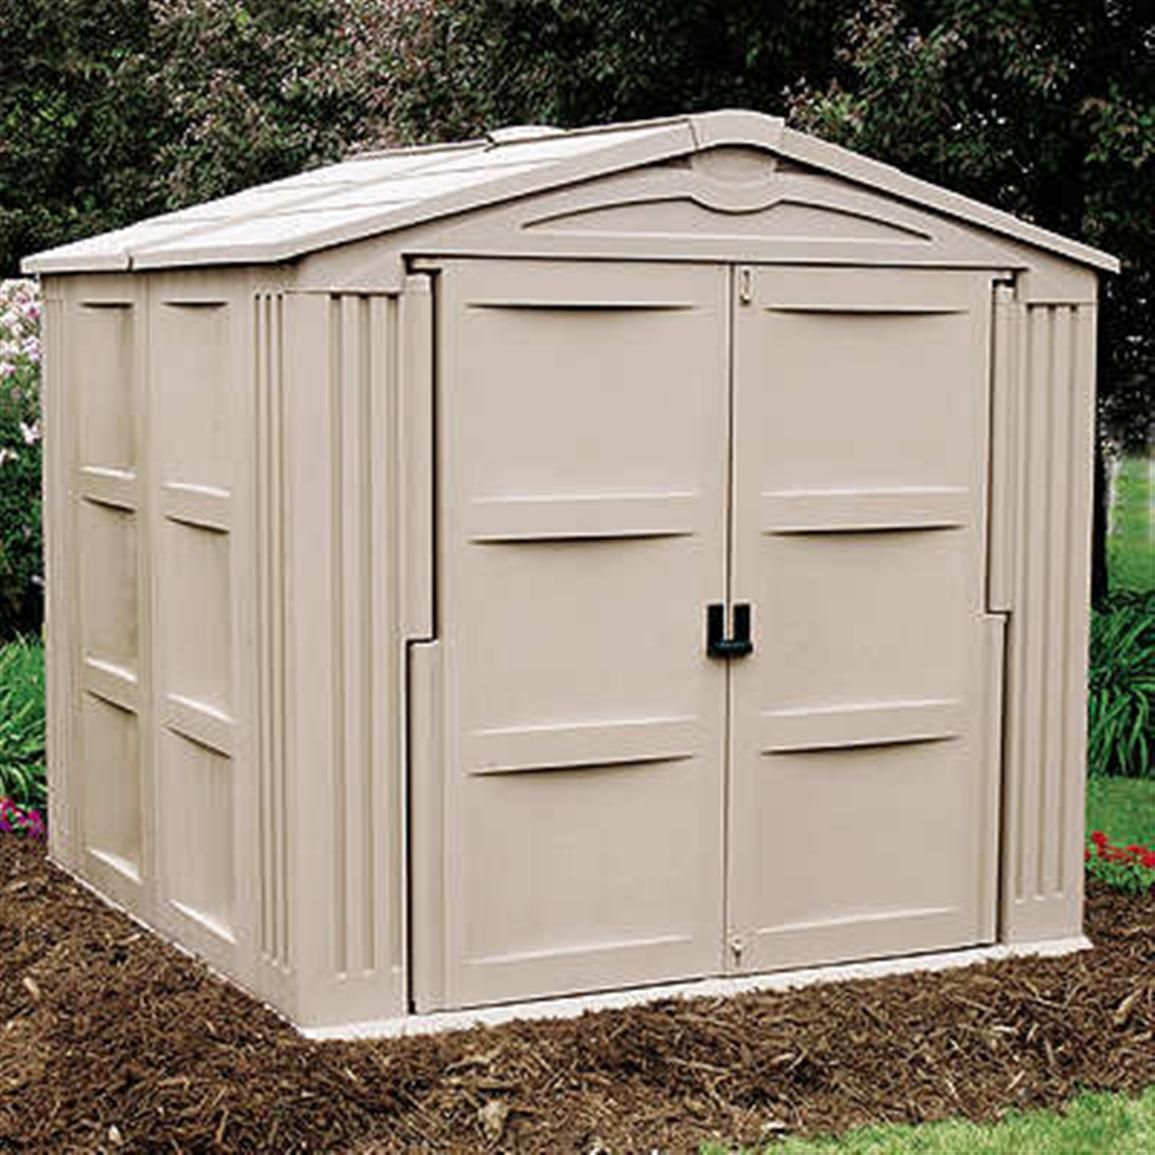 Easy Diy Storage Shed Ideas - Just Craft & DIY Projects